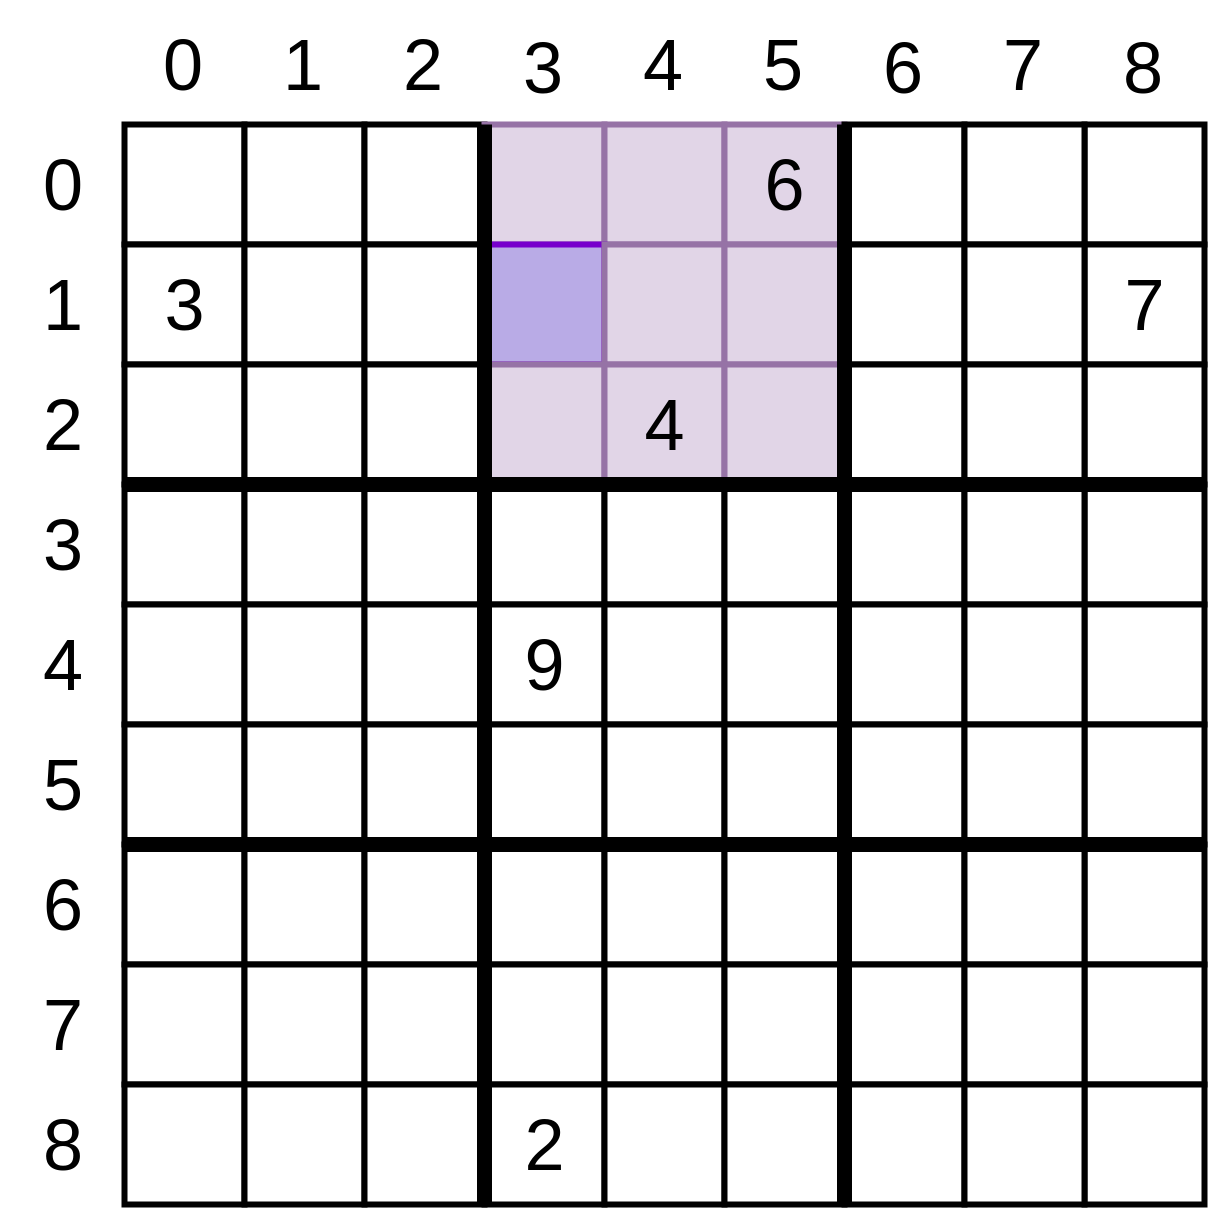 A Sudoku grid showing a starting point to indicate possible values for a specific cell.